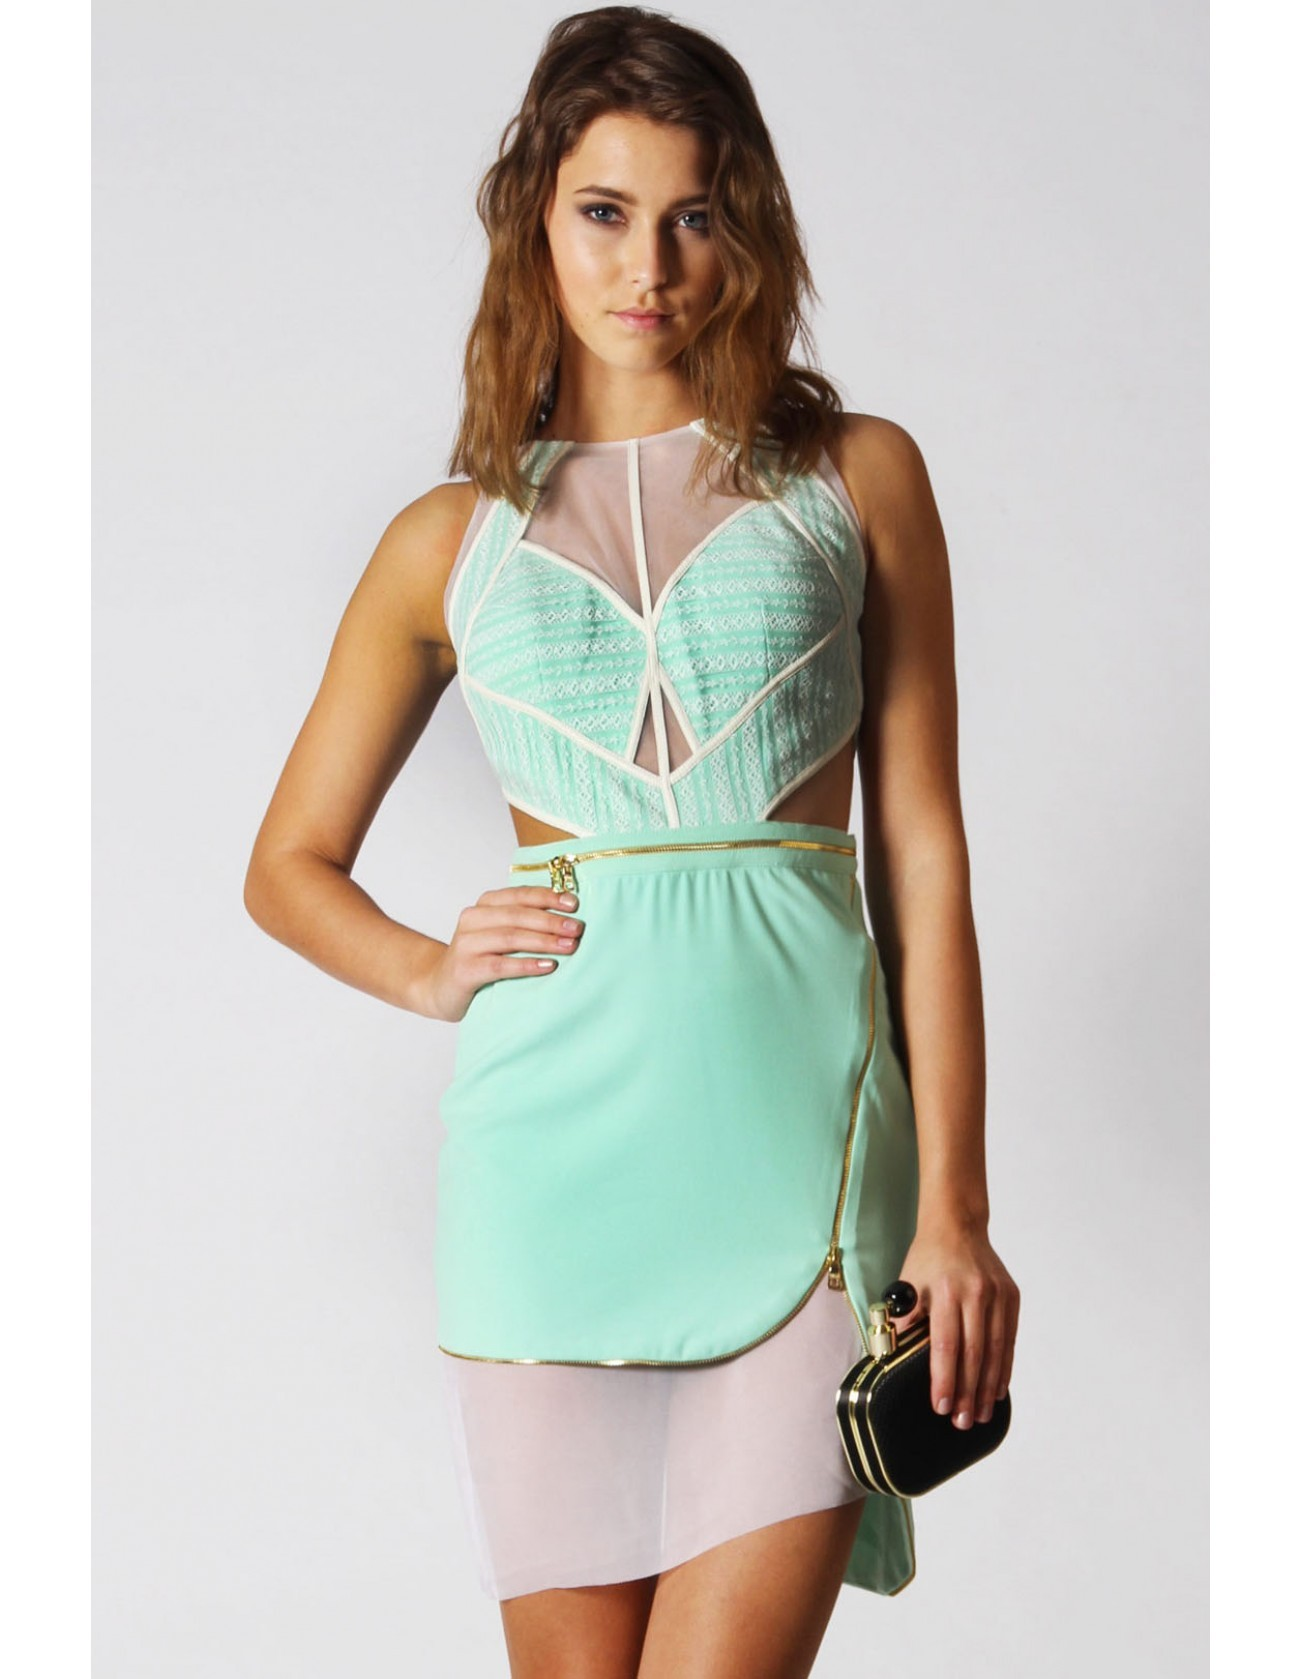 Areca Cut Out Mint Lace Dress